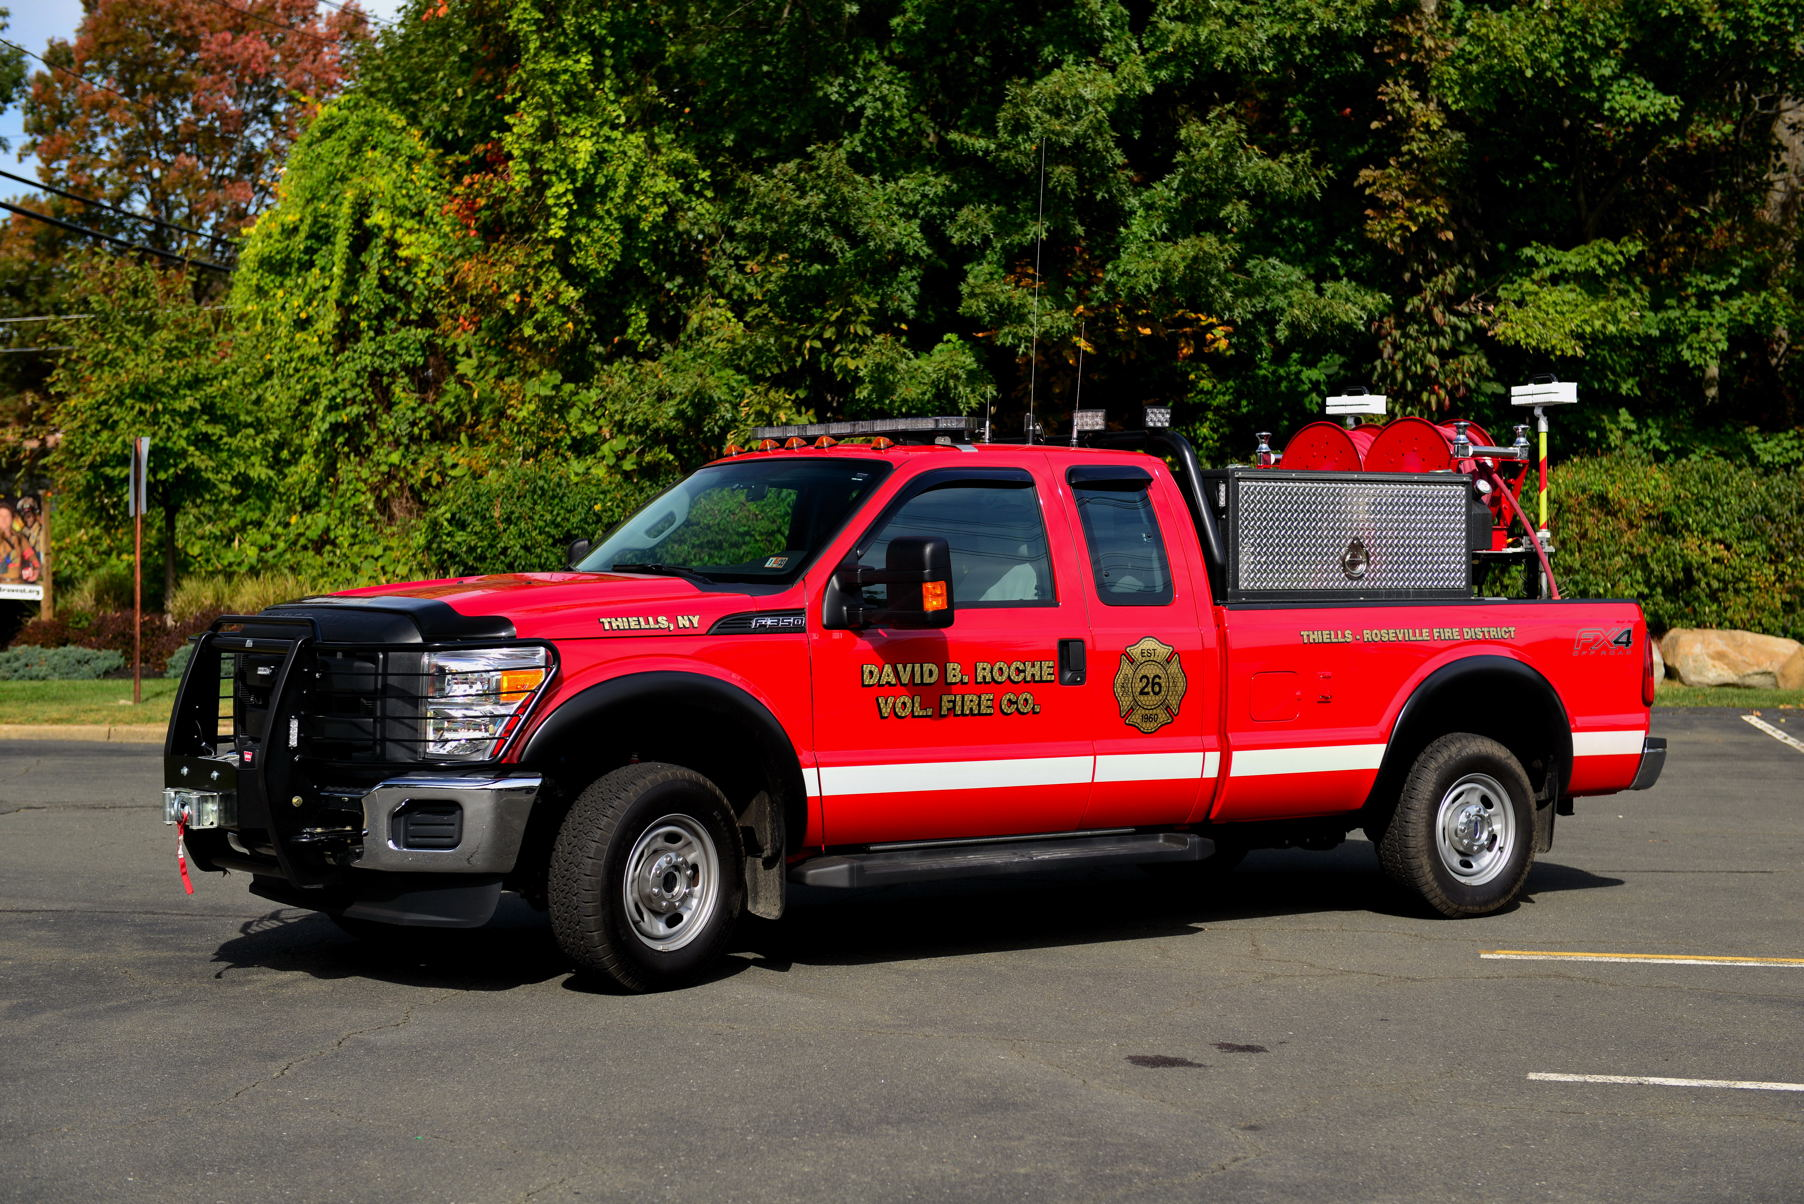 Ford Expedition 2004 Current Apparatus | Thiells Fire Department 26